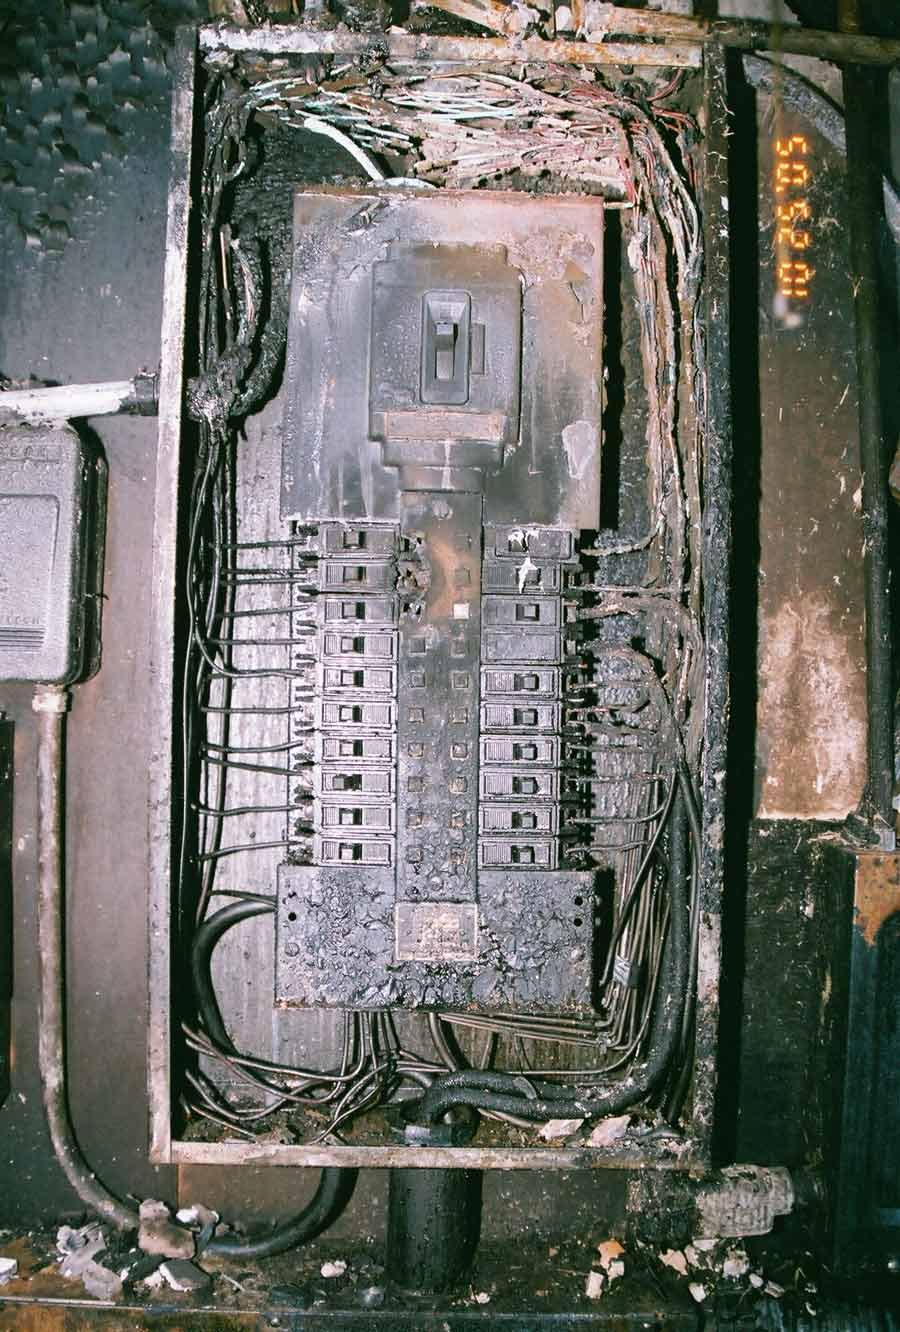 Electrical Distribution Panels Circuit Breaker Fires Wiring Box To Severe Arcing In Panel